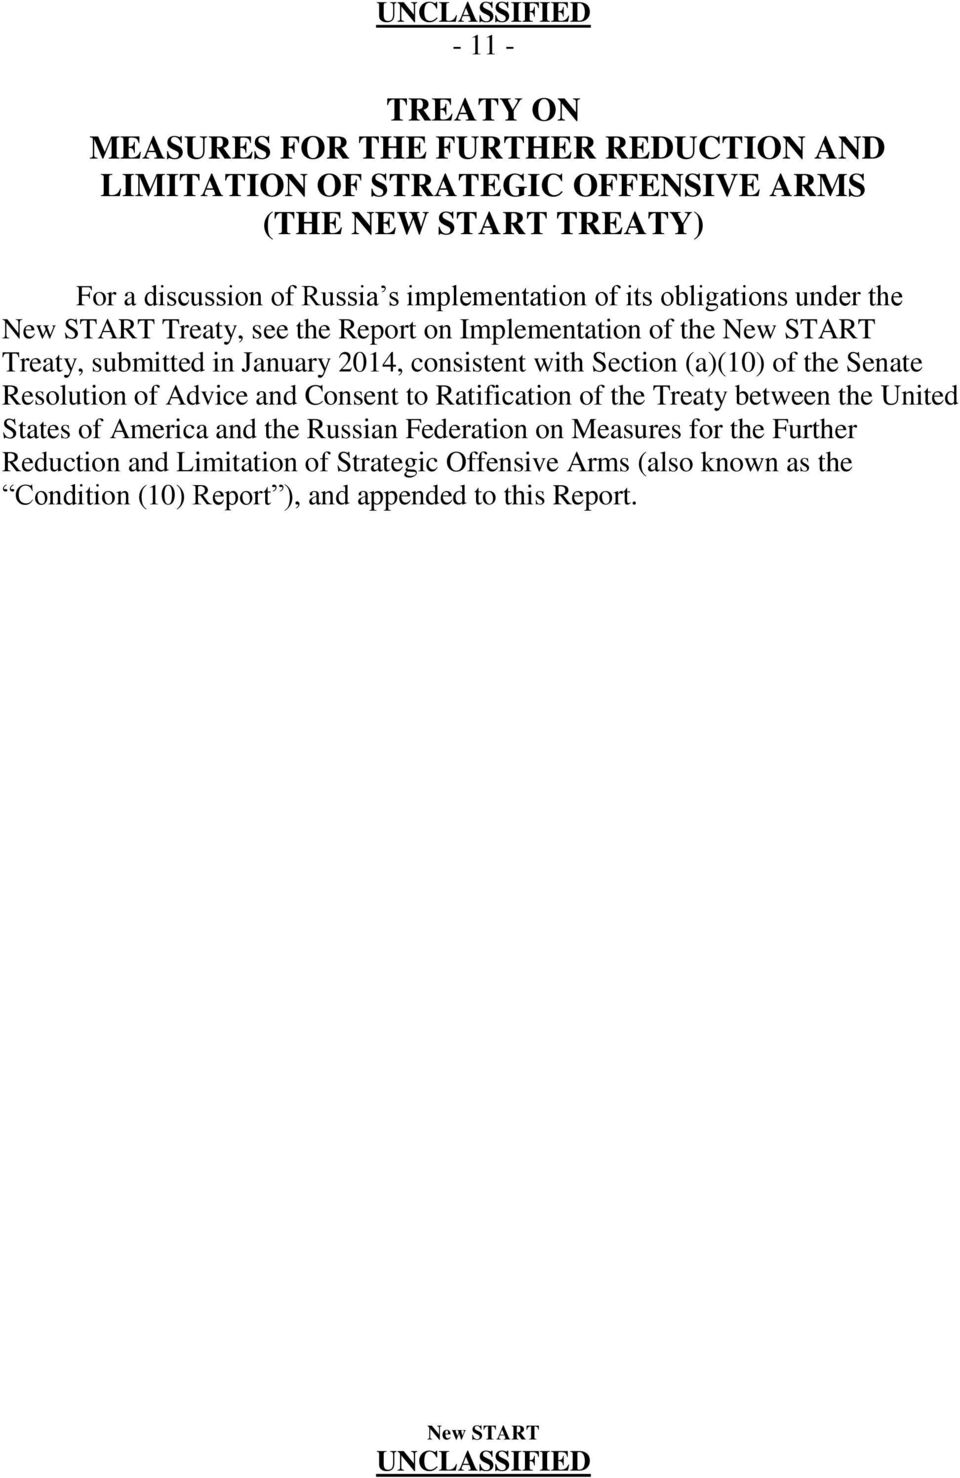 with Section (a)(10) of the Senate Resolution of Advice and Consent to Ratification of the Treaty between the United States of America and the Russian